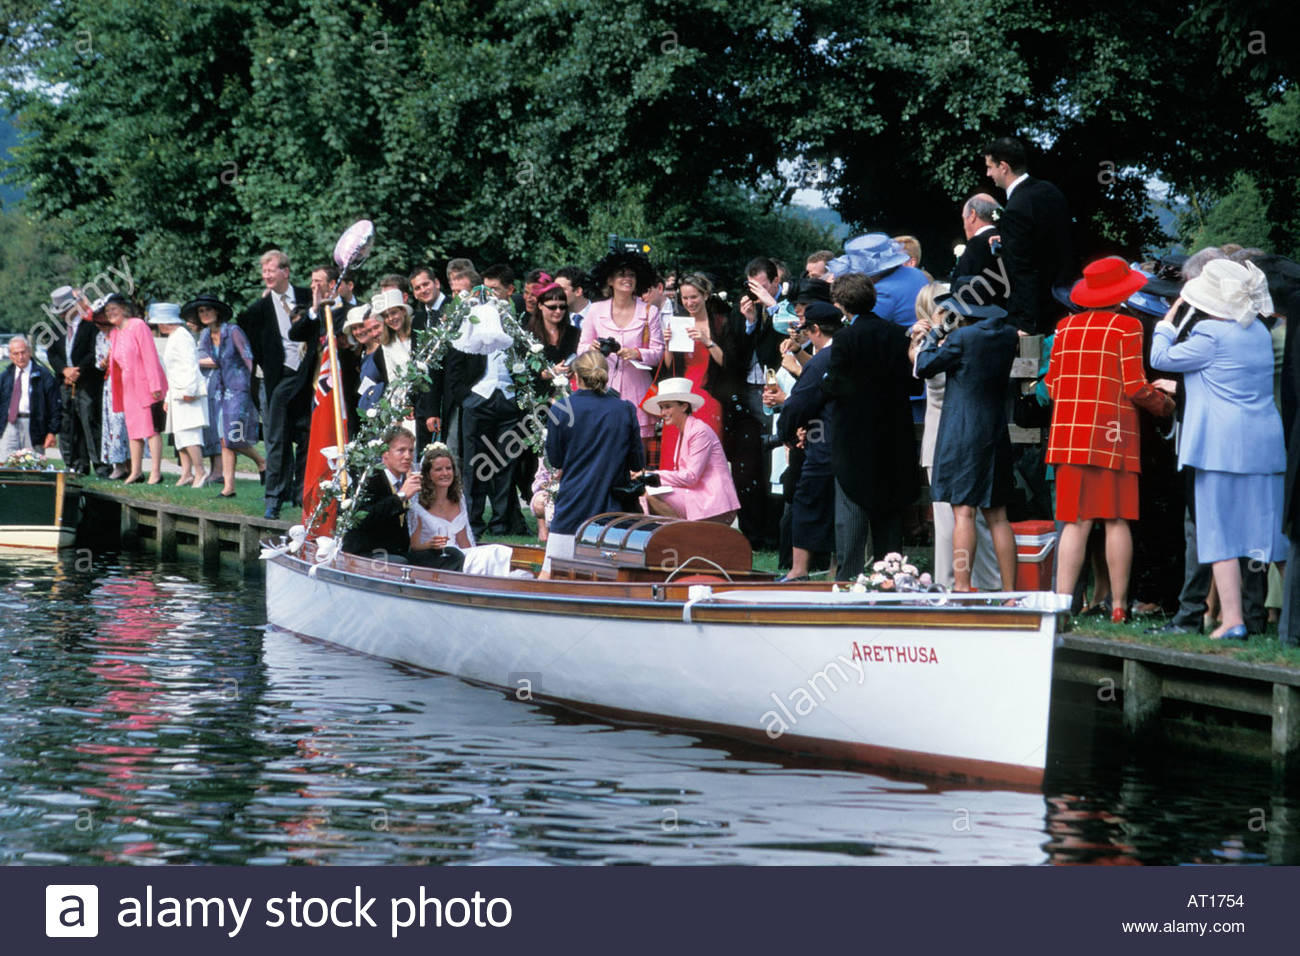 Couple leaving for their wedding reception on a Henley regatta umpirer's launch at Remenham, UK Stock Photo